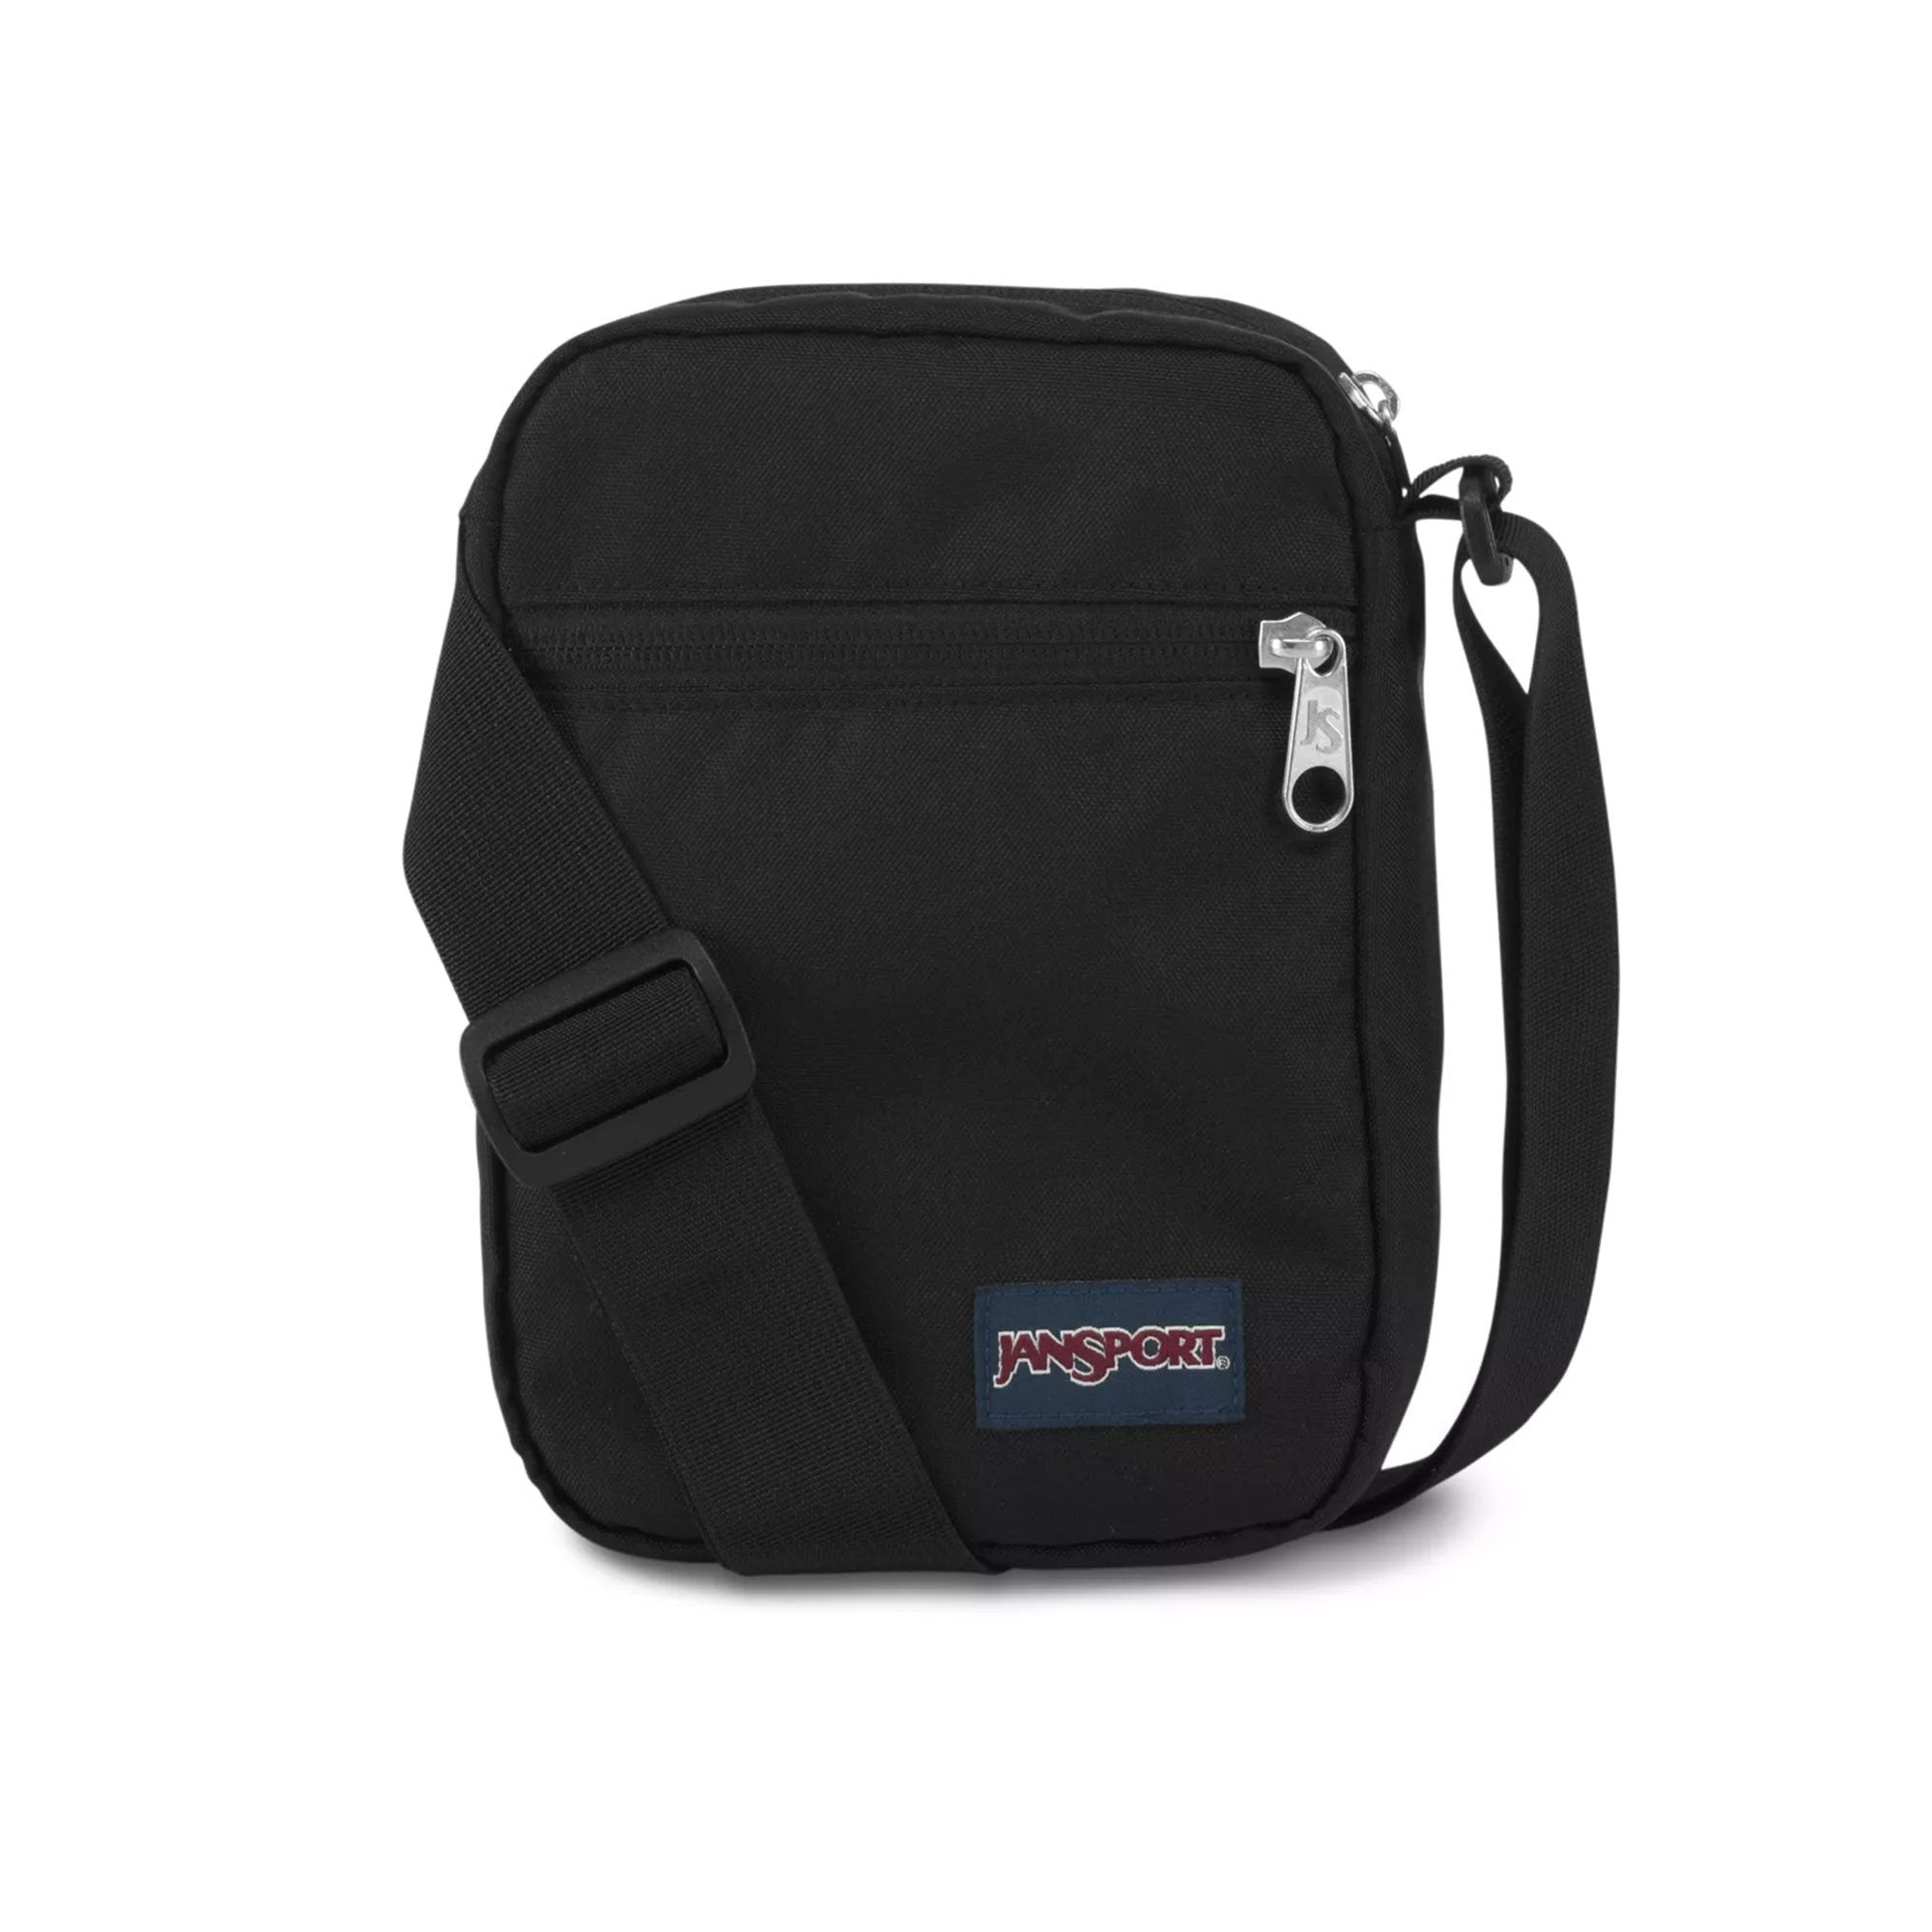 Jansport Weekender Bag